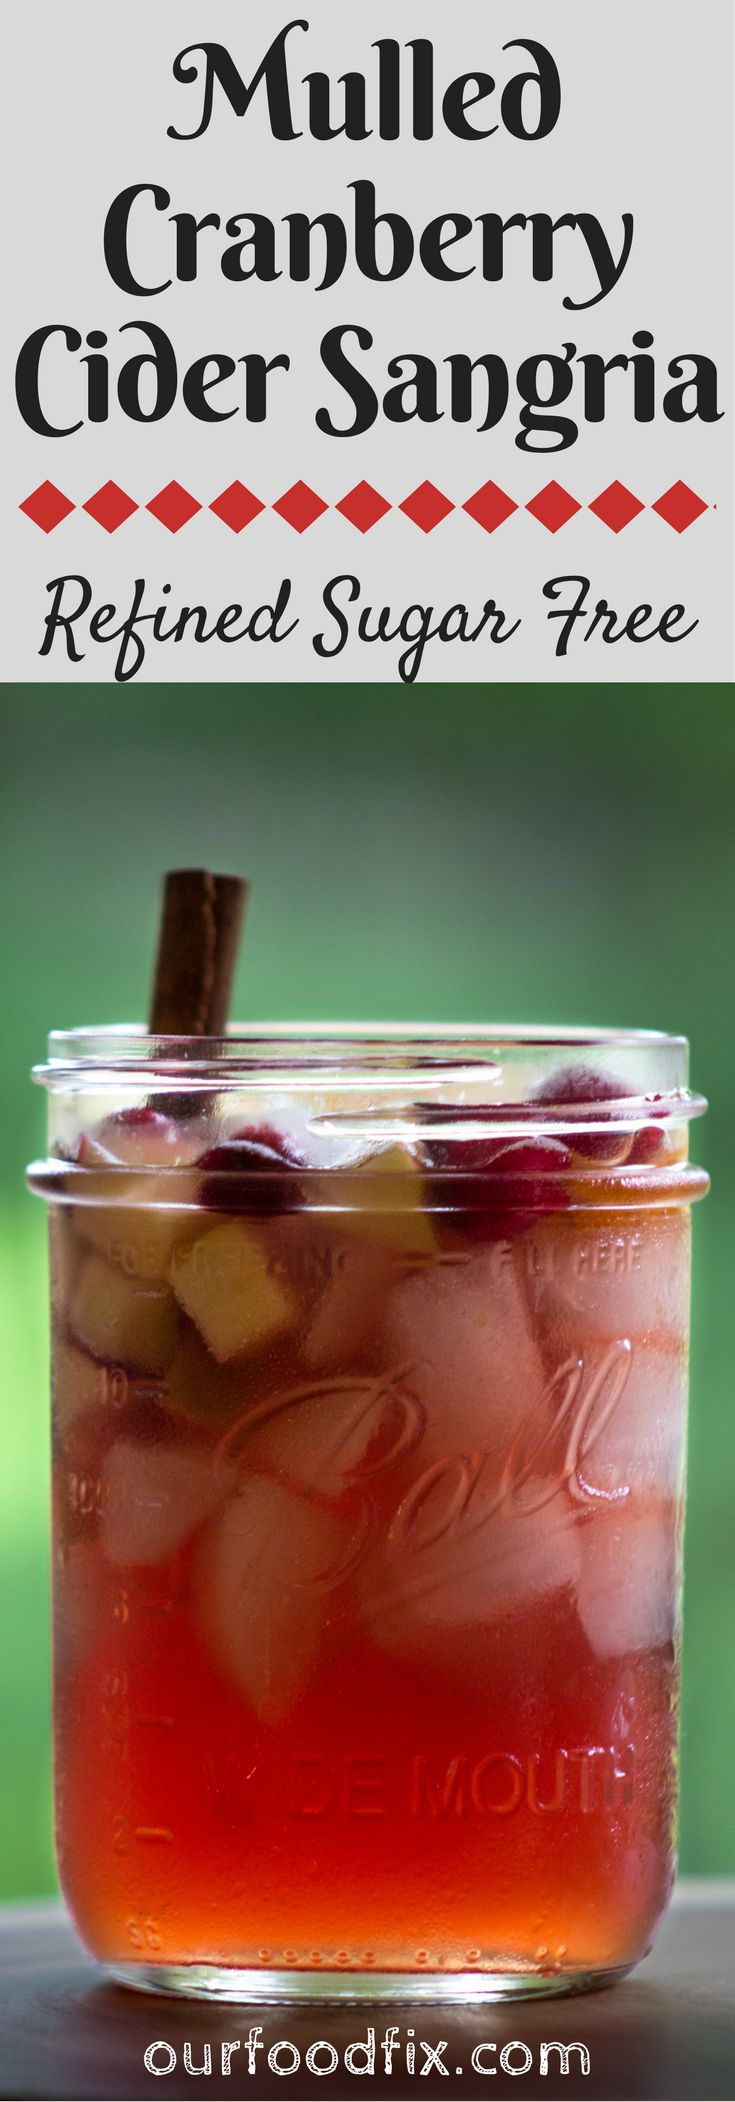 Sangria recipes | Drinks recipes | Refined Sugar free | Winter drinks | Fall drinks | Cocktail recipes | Mulled wine | Apple cider | Fruity cocktails | Pitcher cocktails | Party drinks